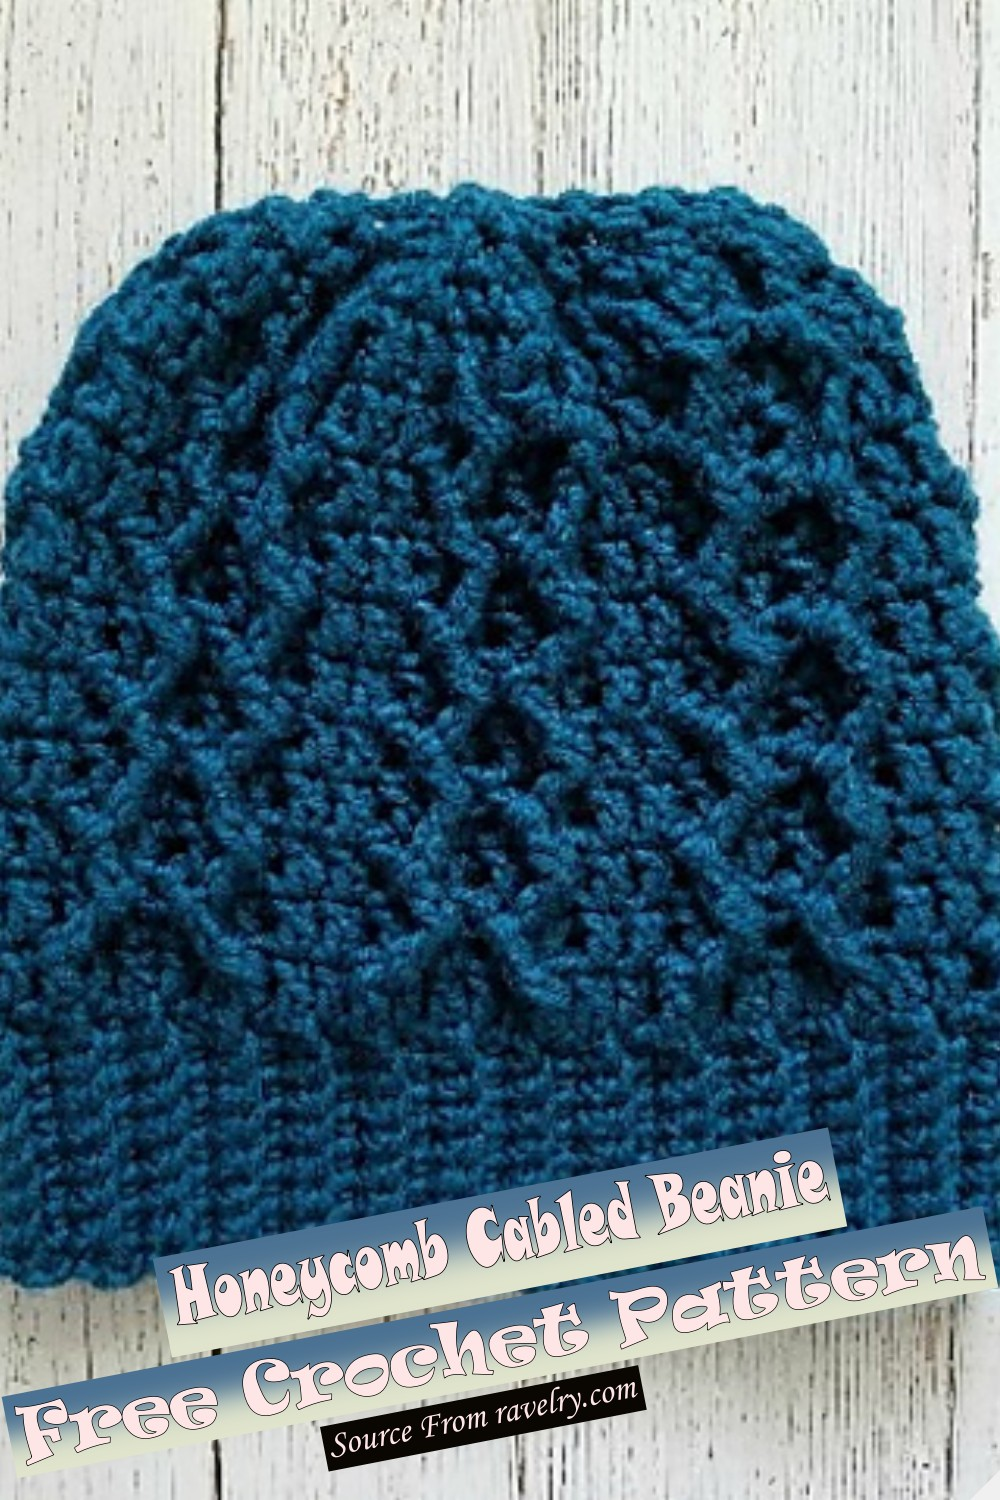 Free Crochet Honeycomb Cabled Beanie Pattern